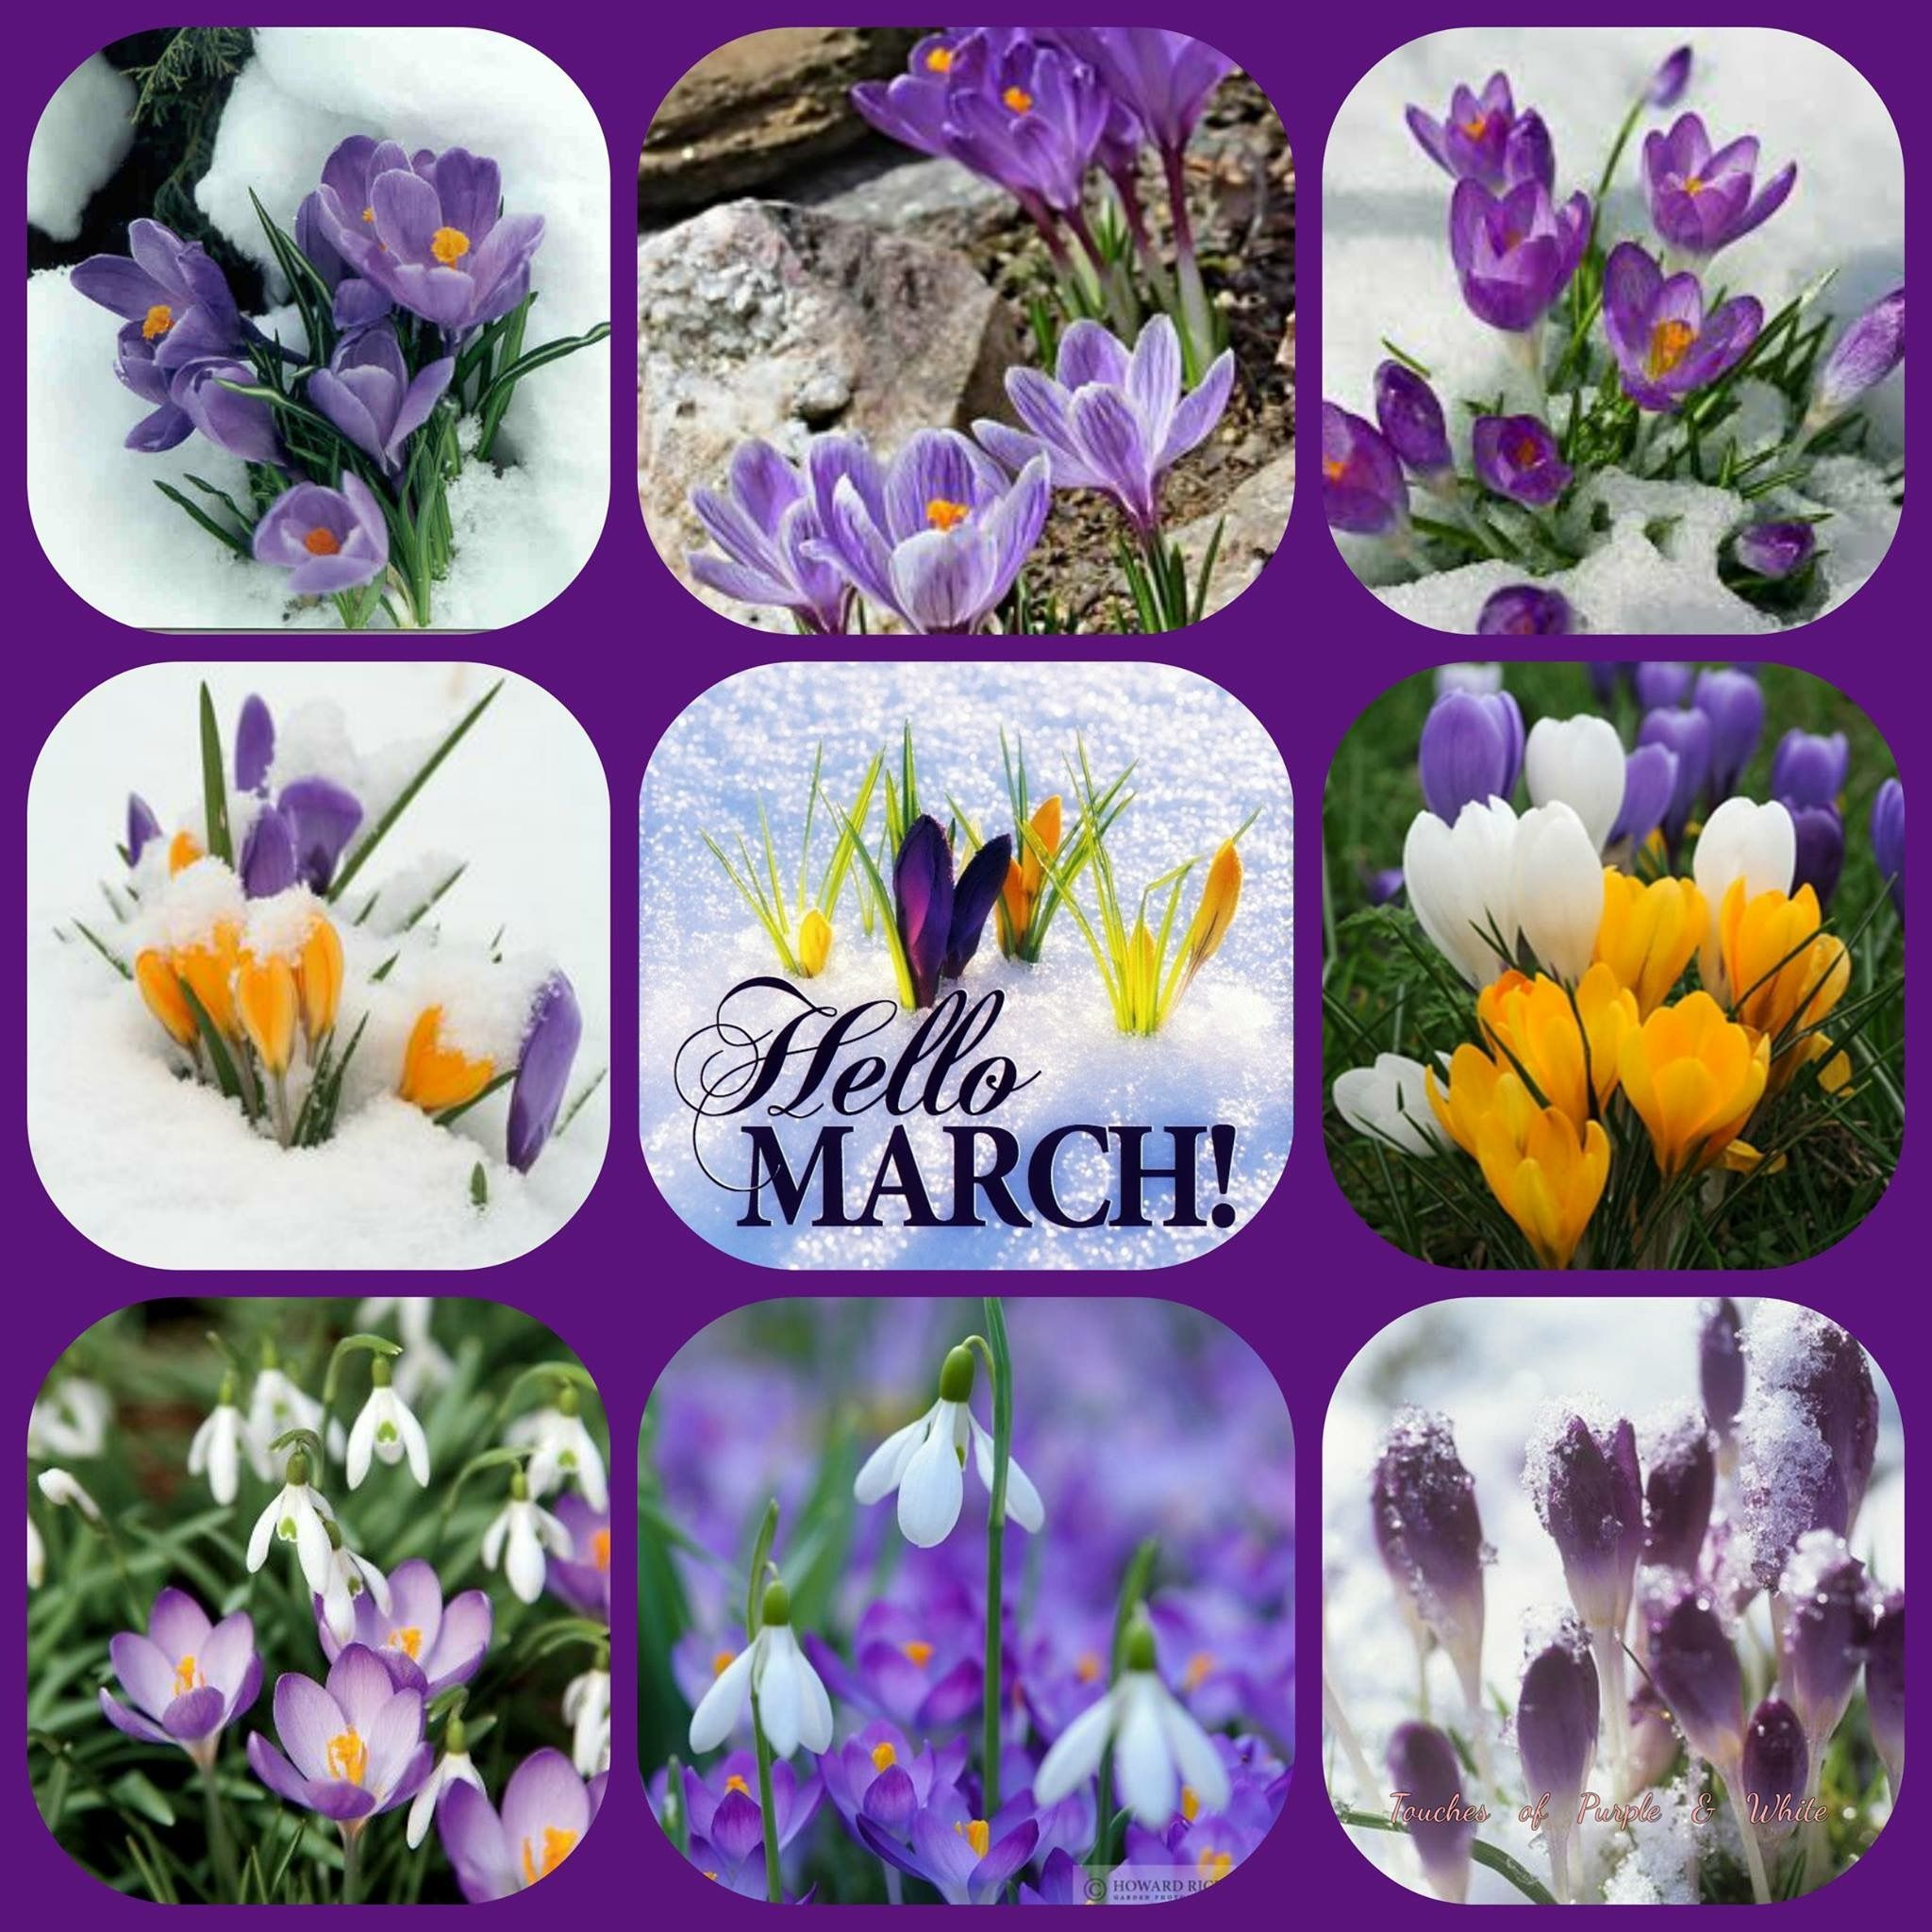 Pin By Gigi Pietri On Months Of The Year Birthday Quotes For Me Hello March Birthday Quotes